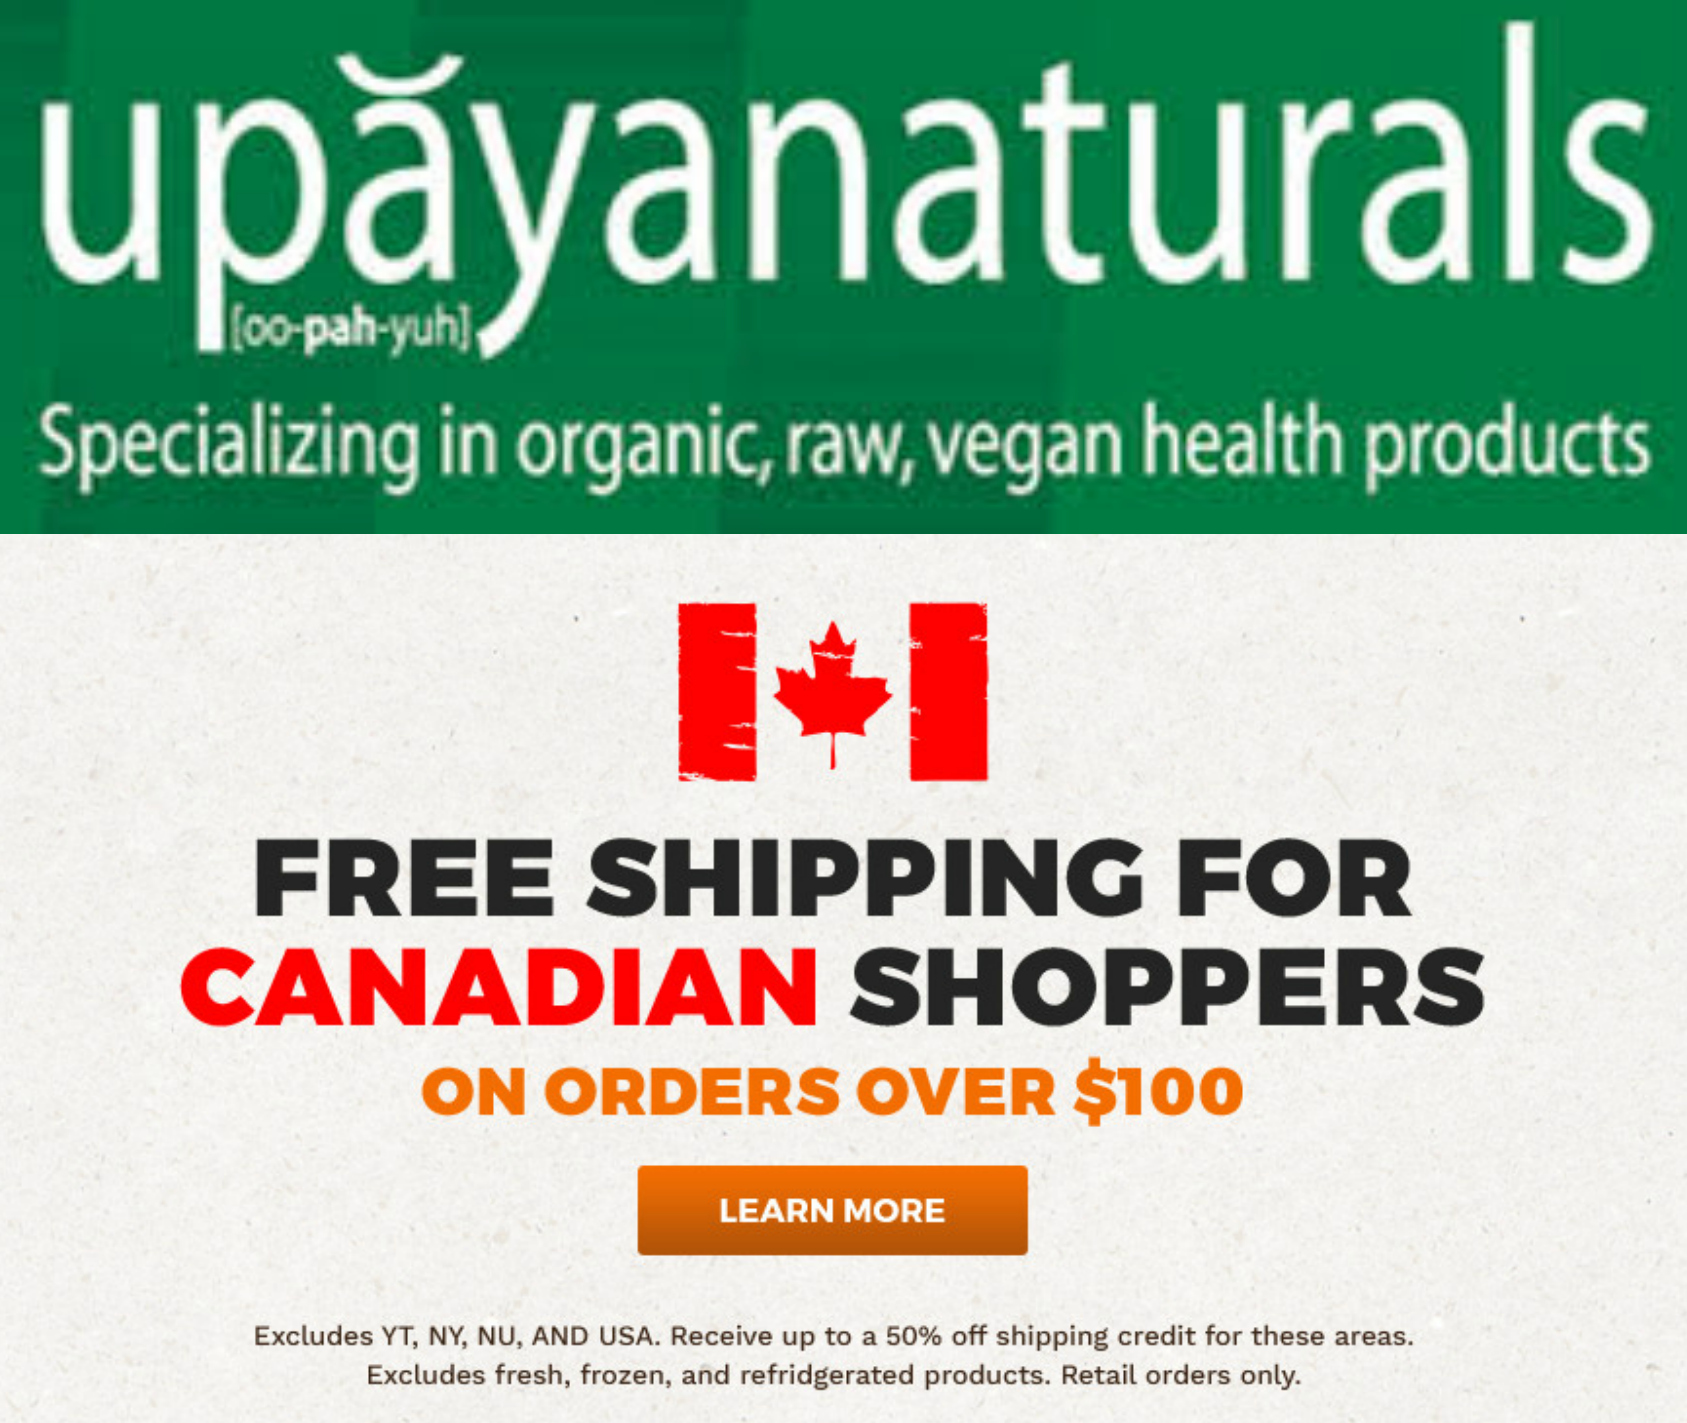 upayanaturals Affiliate Logo and Shipping